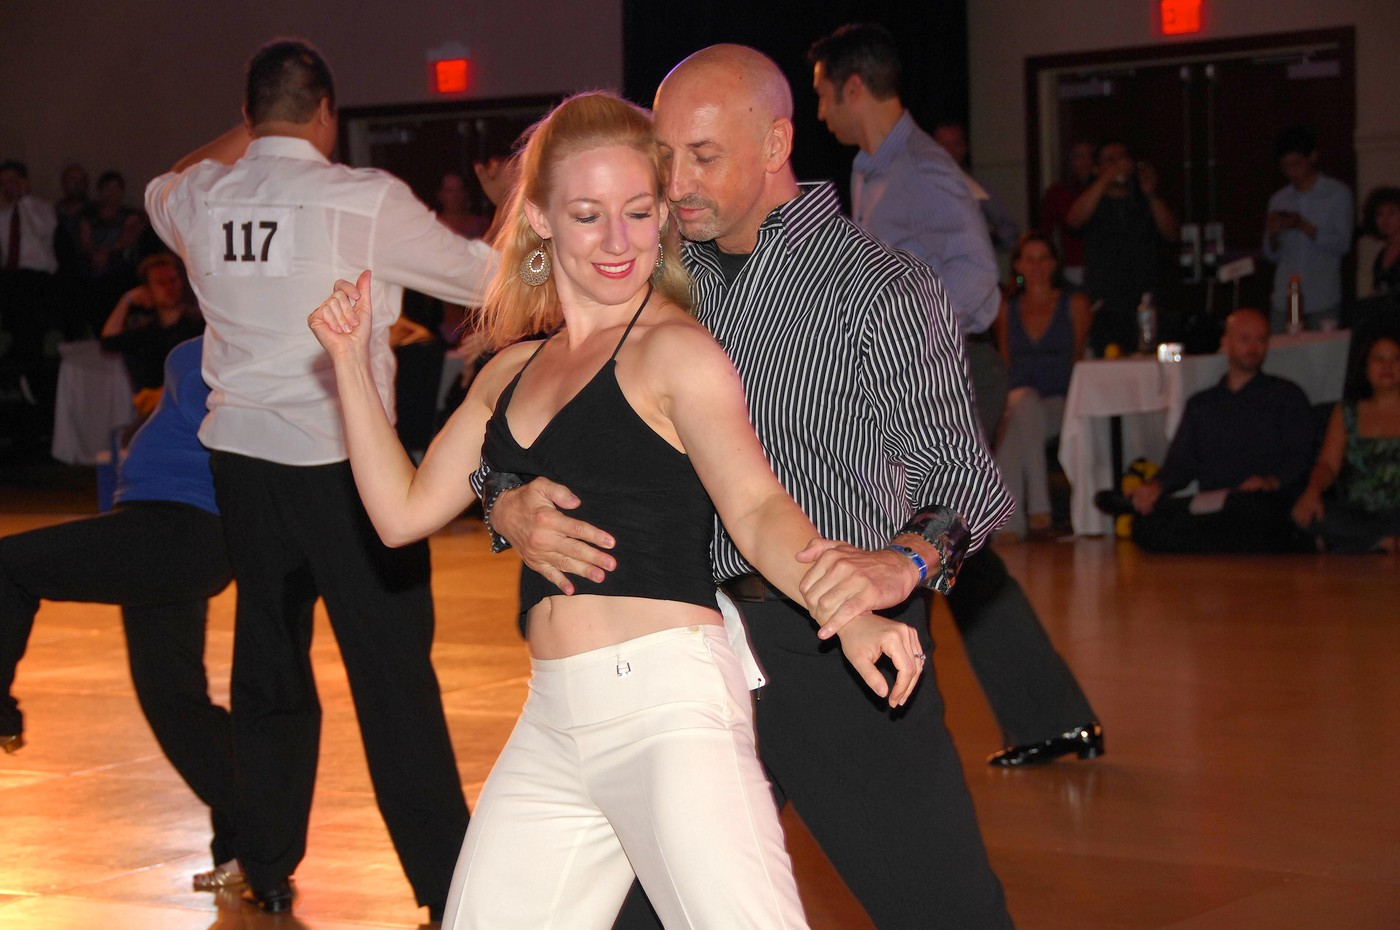 Anna Novoa at Swing Fling 2011 - Intermediate Jack & Jill